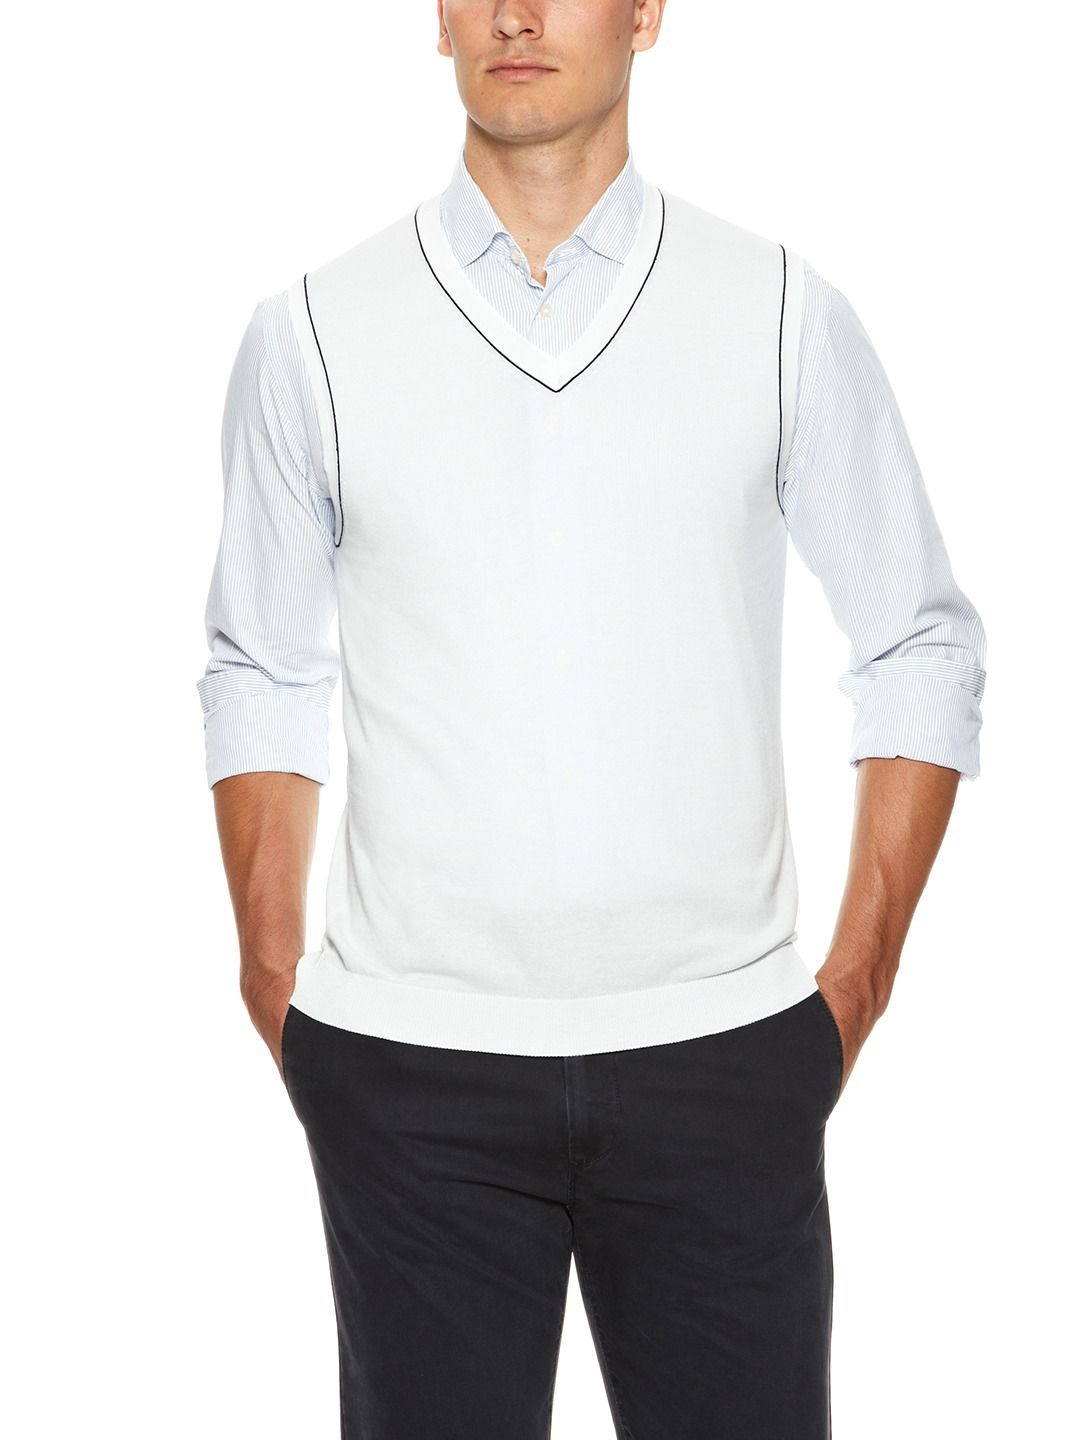 Sweater Vest by Luca Roda at Gilt